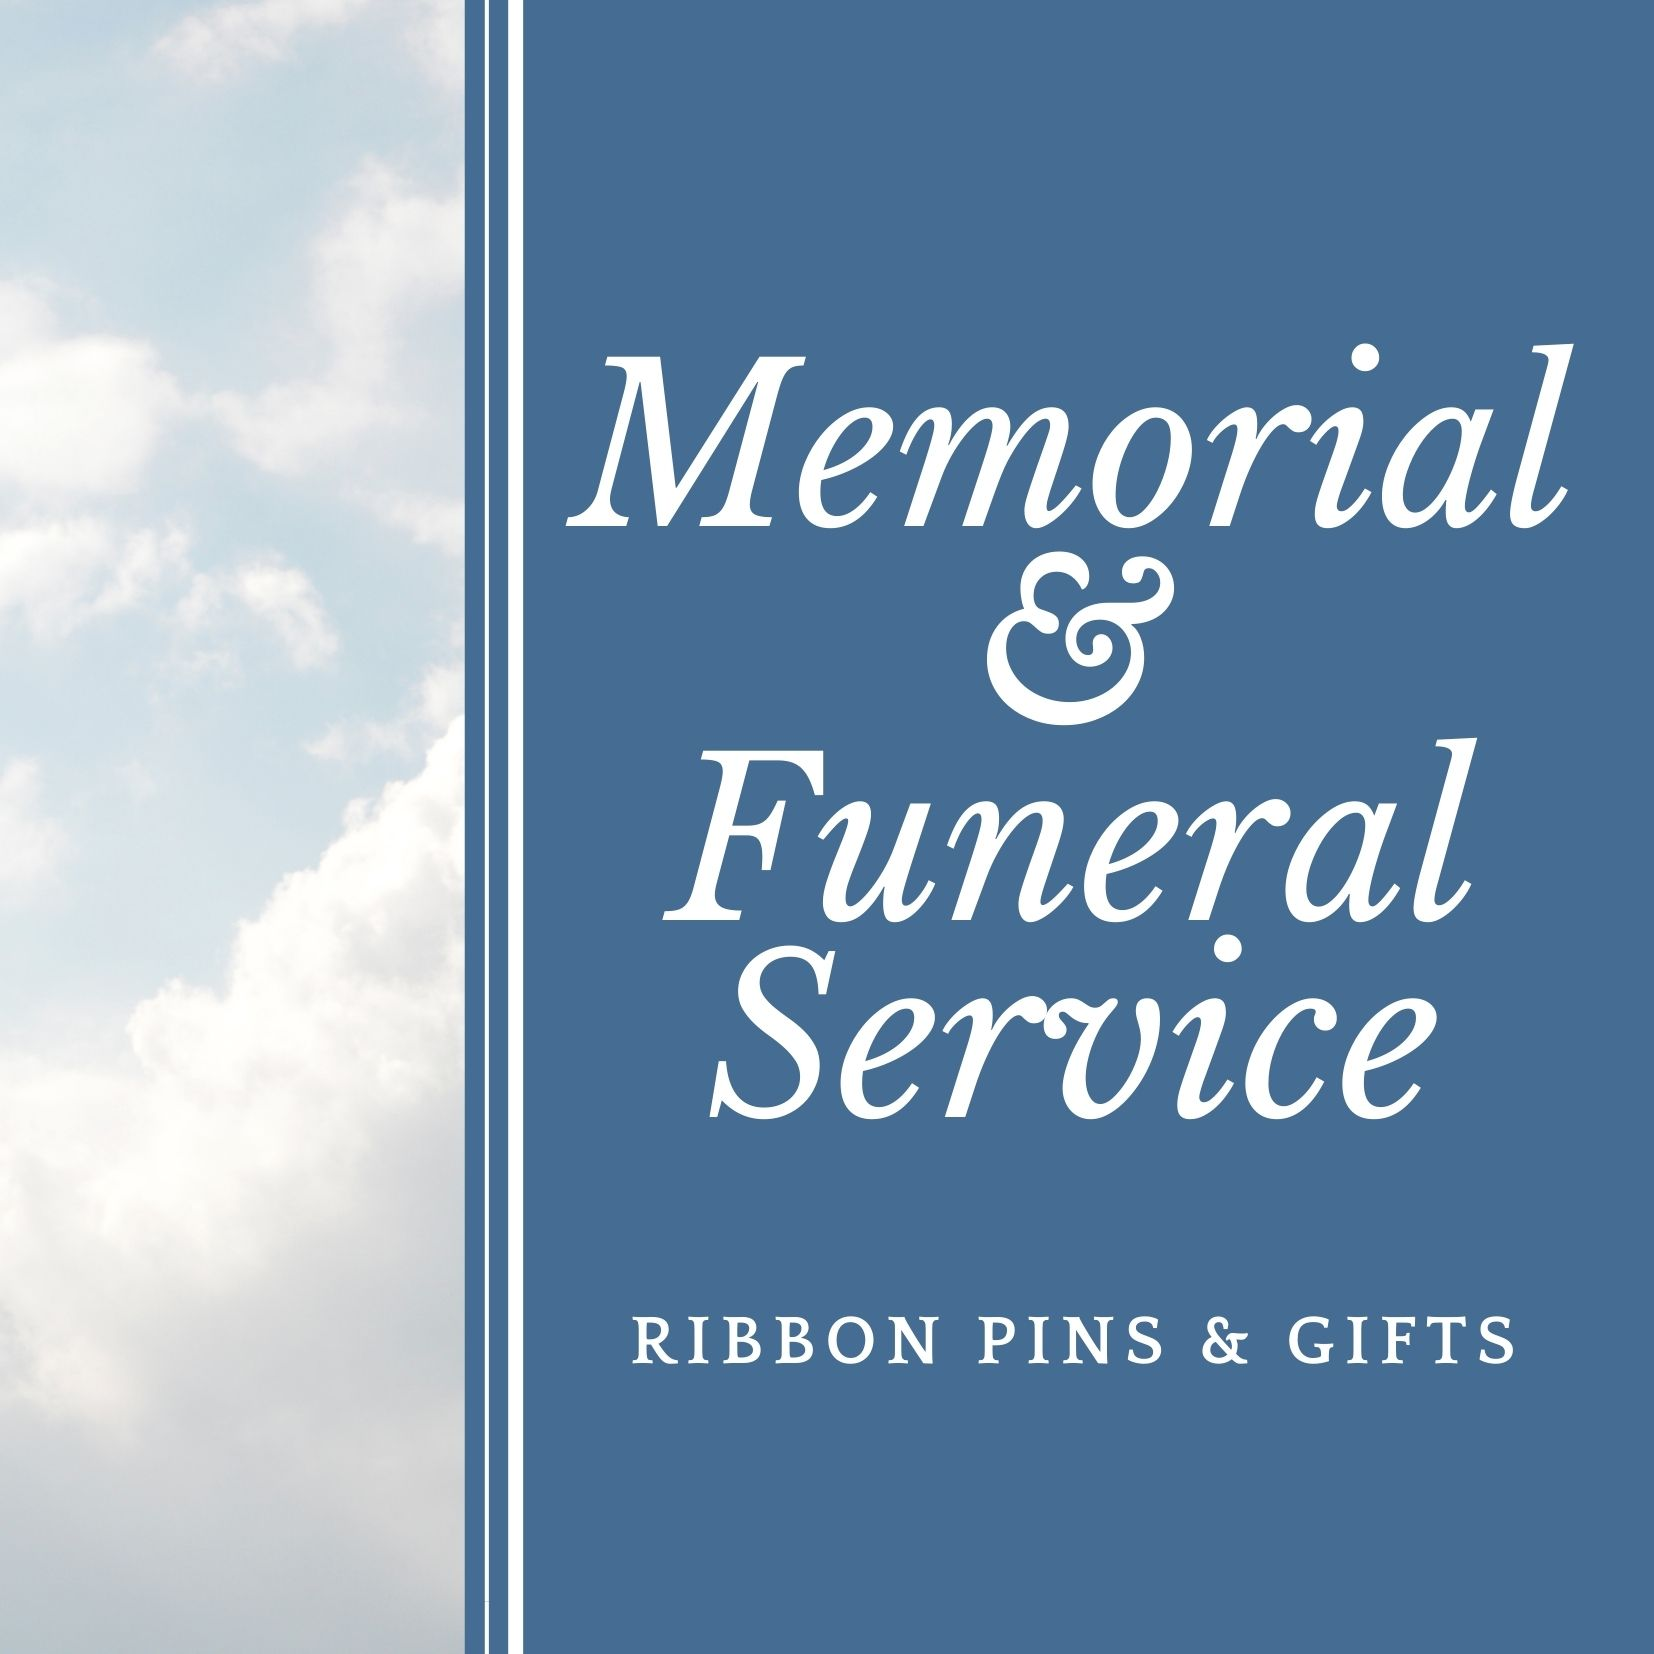 memorial service funeral in loving memory ribbon pins personalized gifts